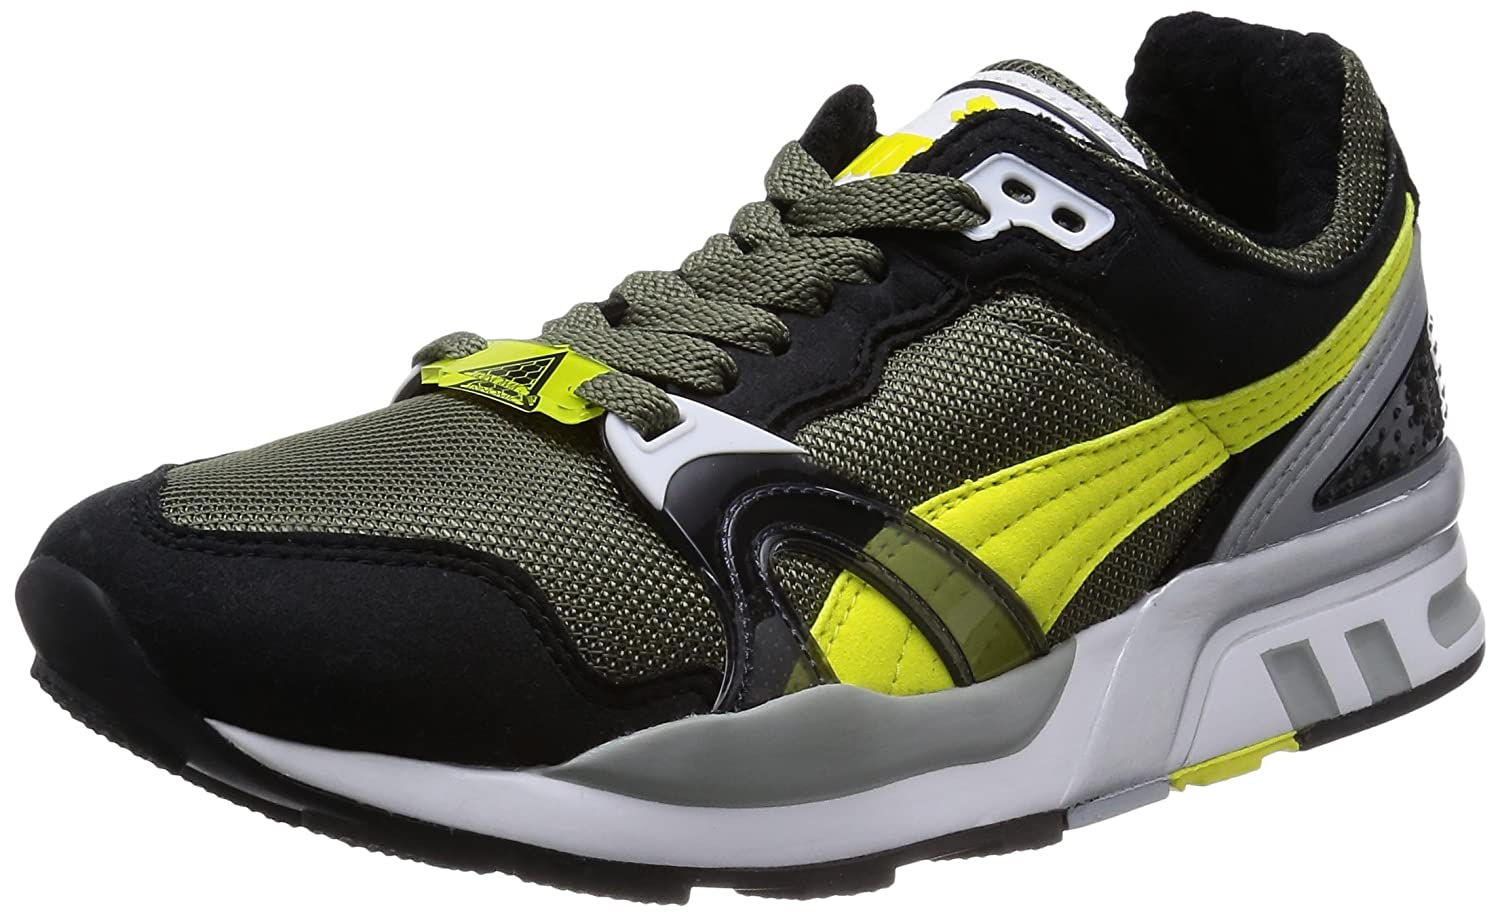 Amazon.com | Puma Mens Trinomic XT 2 PLUS, BURNT OLIVE-BLACK-CYLON YELLOW, 10.5 M US | Shoes